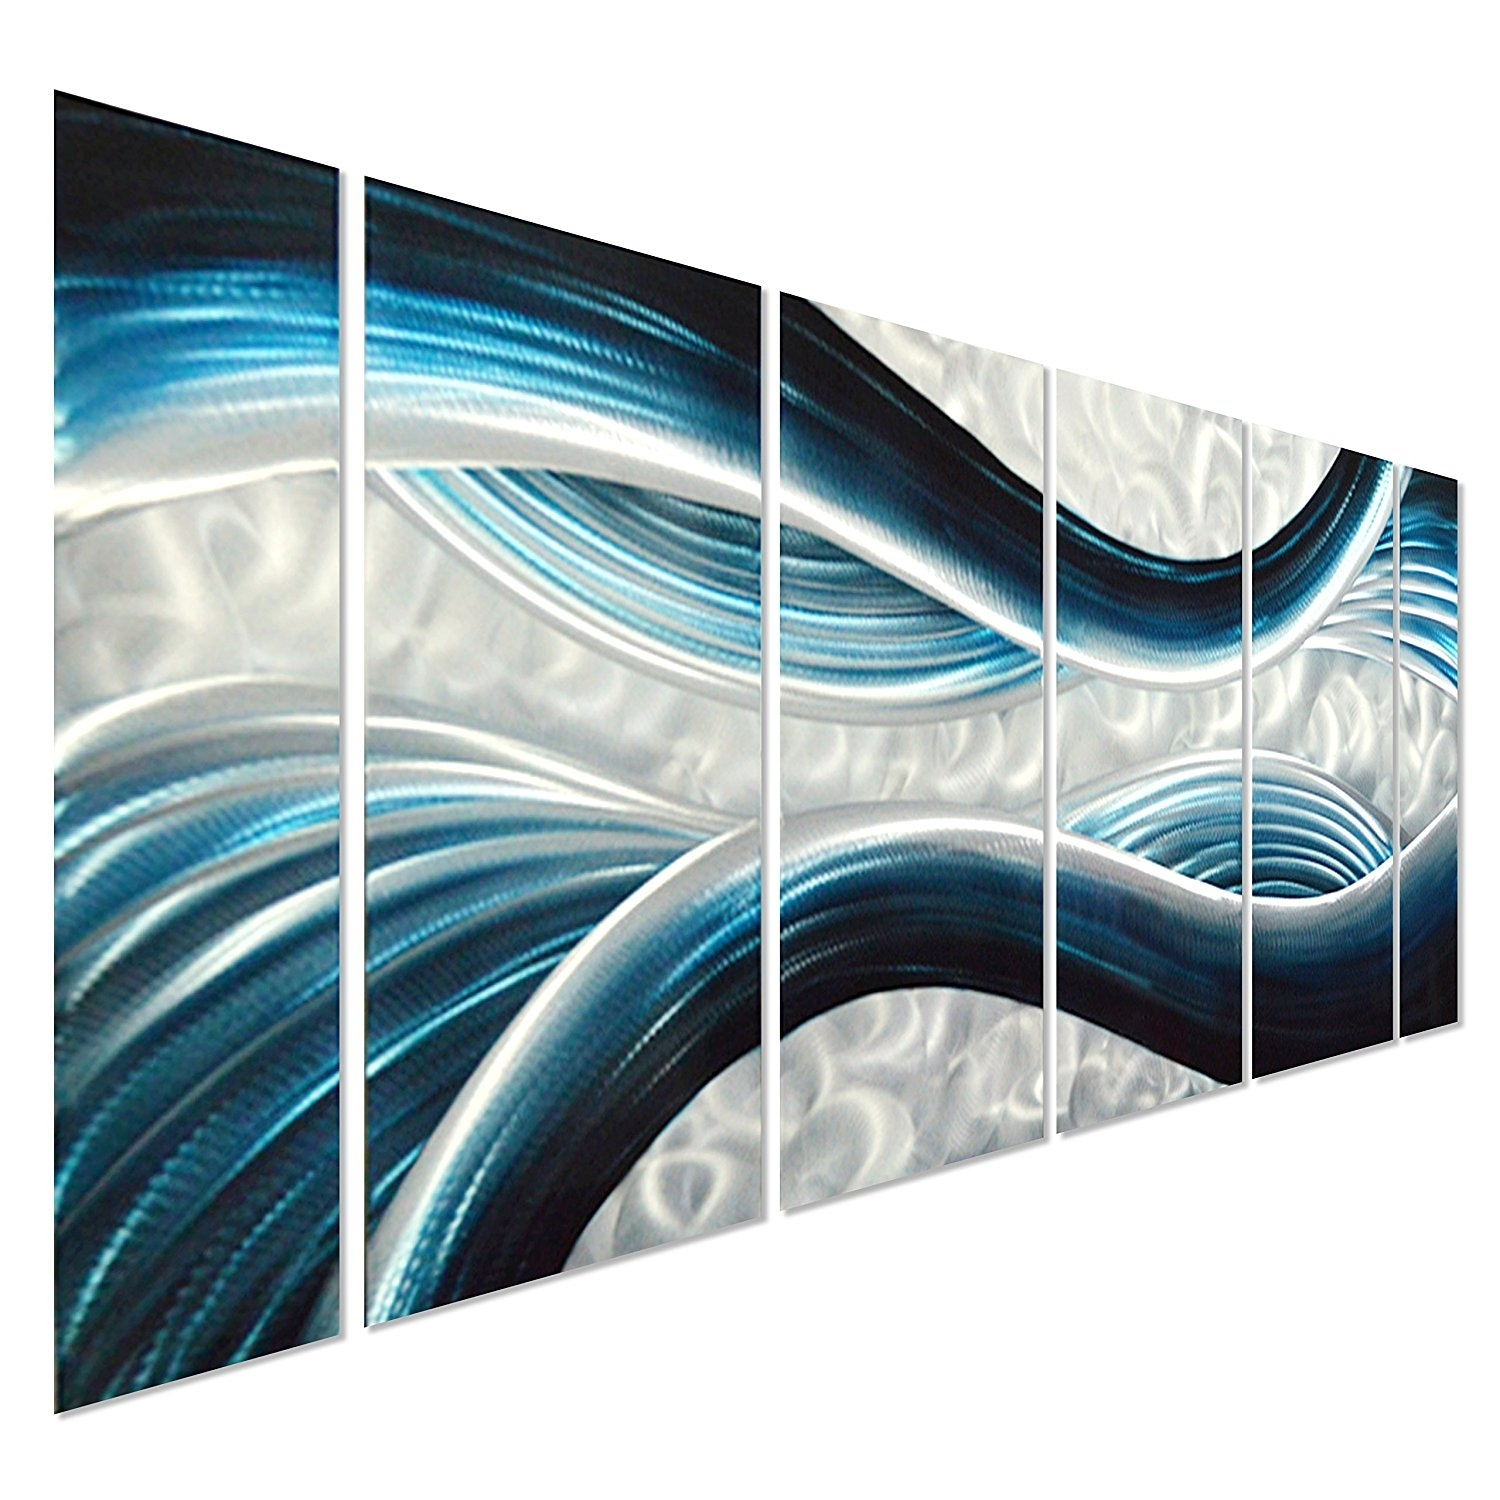 Metal Wall Art Panels Australia A Decal Amazon Blue Desire Large In Latest Abstract Metal Wall Art Australia (View 7 of 20)